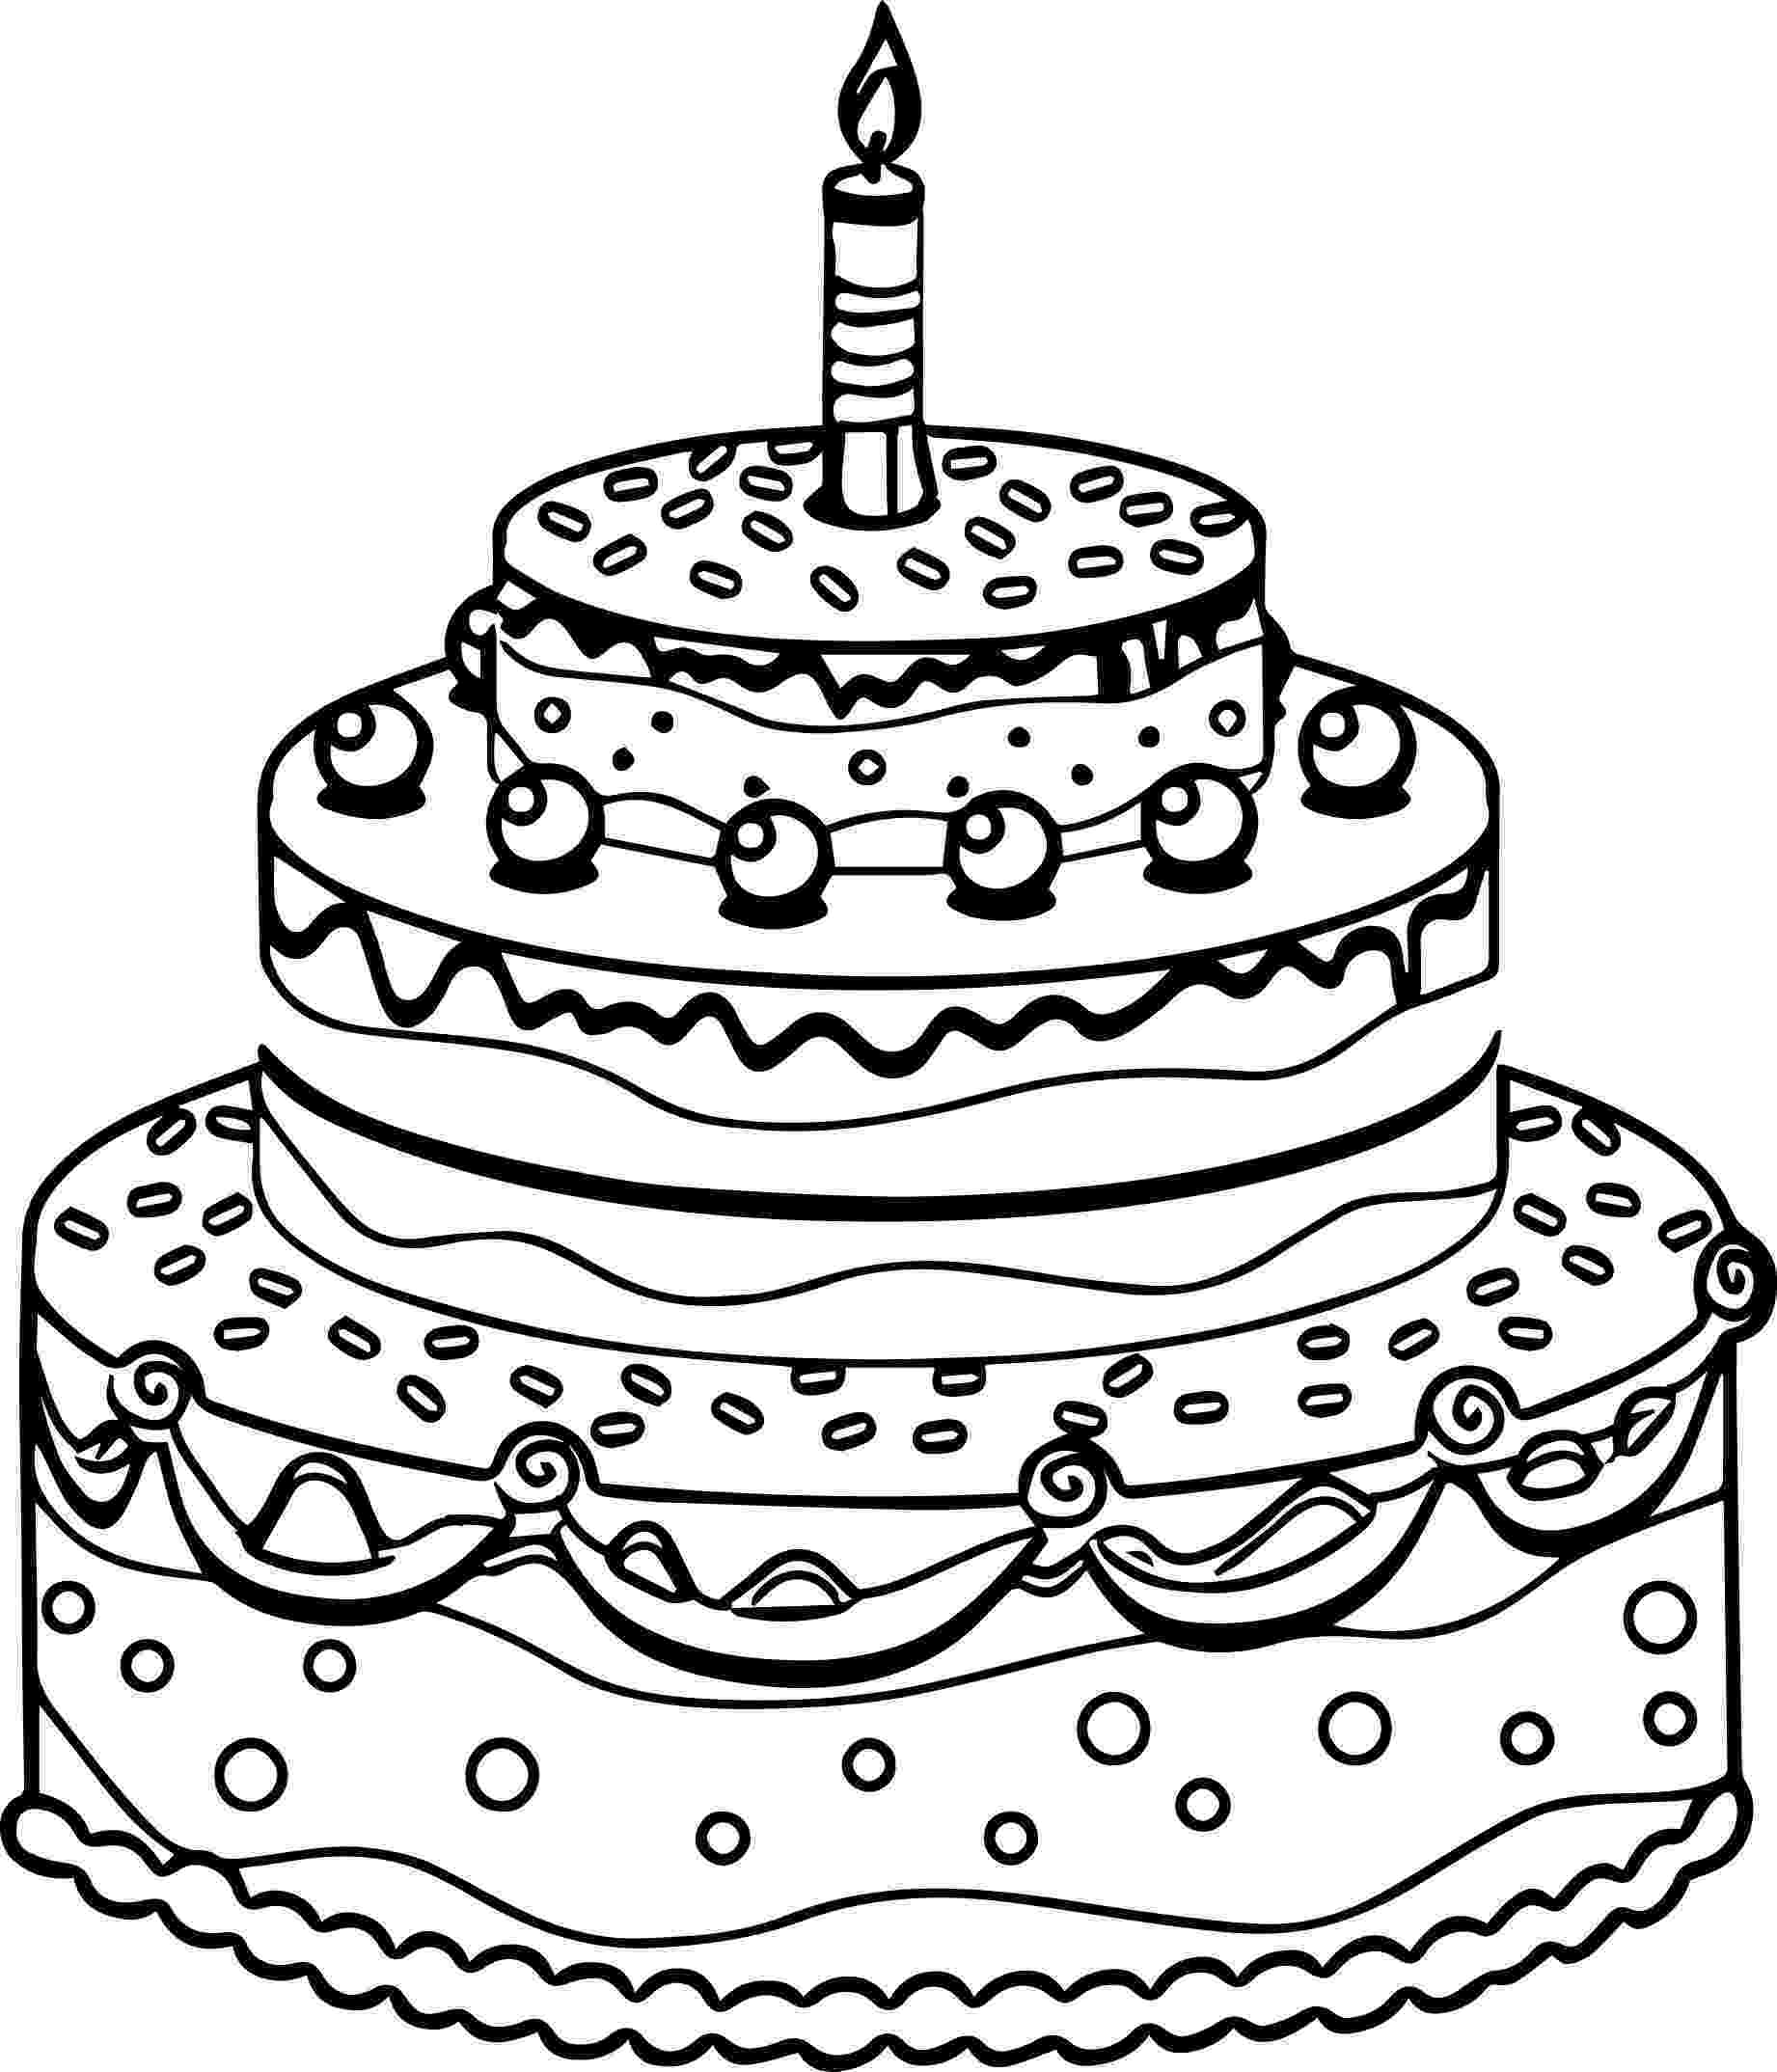 free colouring pages birthday cake birthday candle coloring page at getcoloringscom free birthday colouring free pages cake